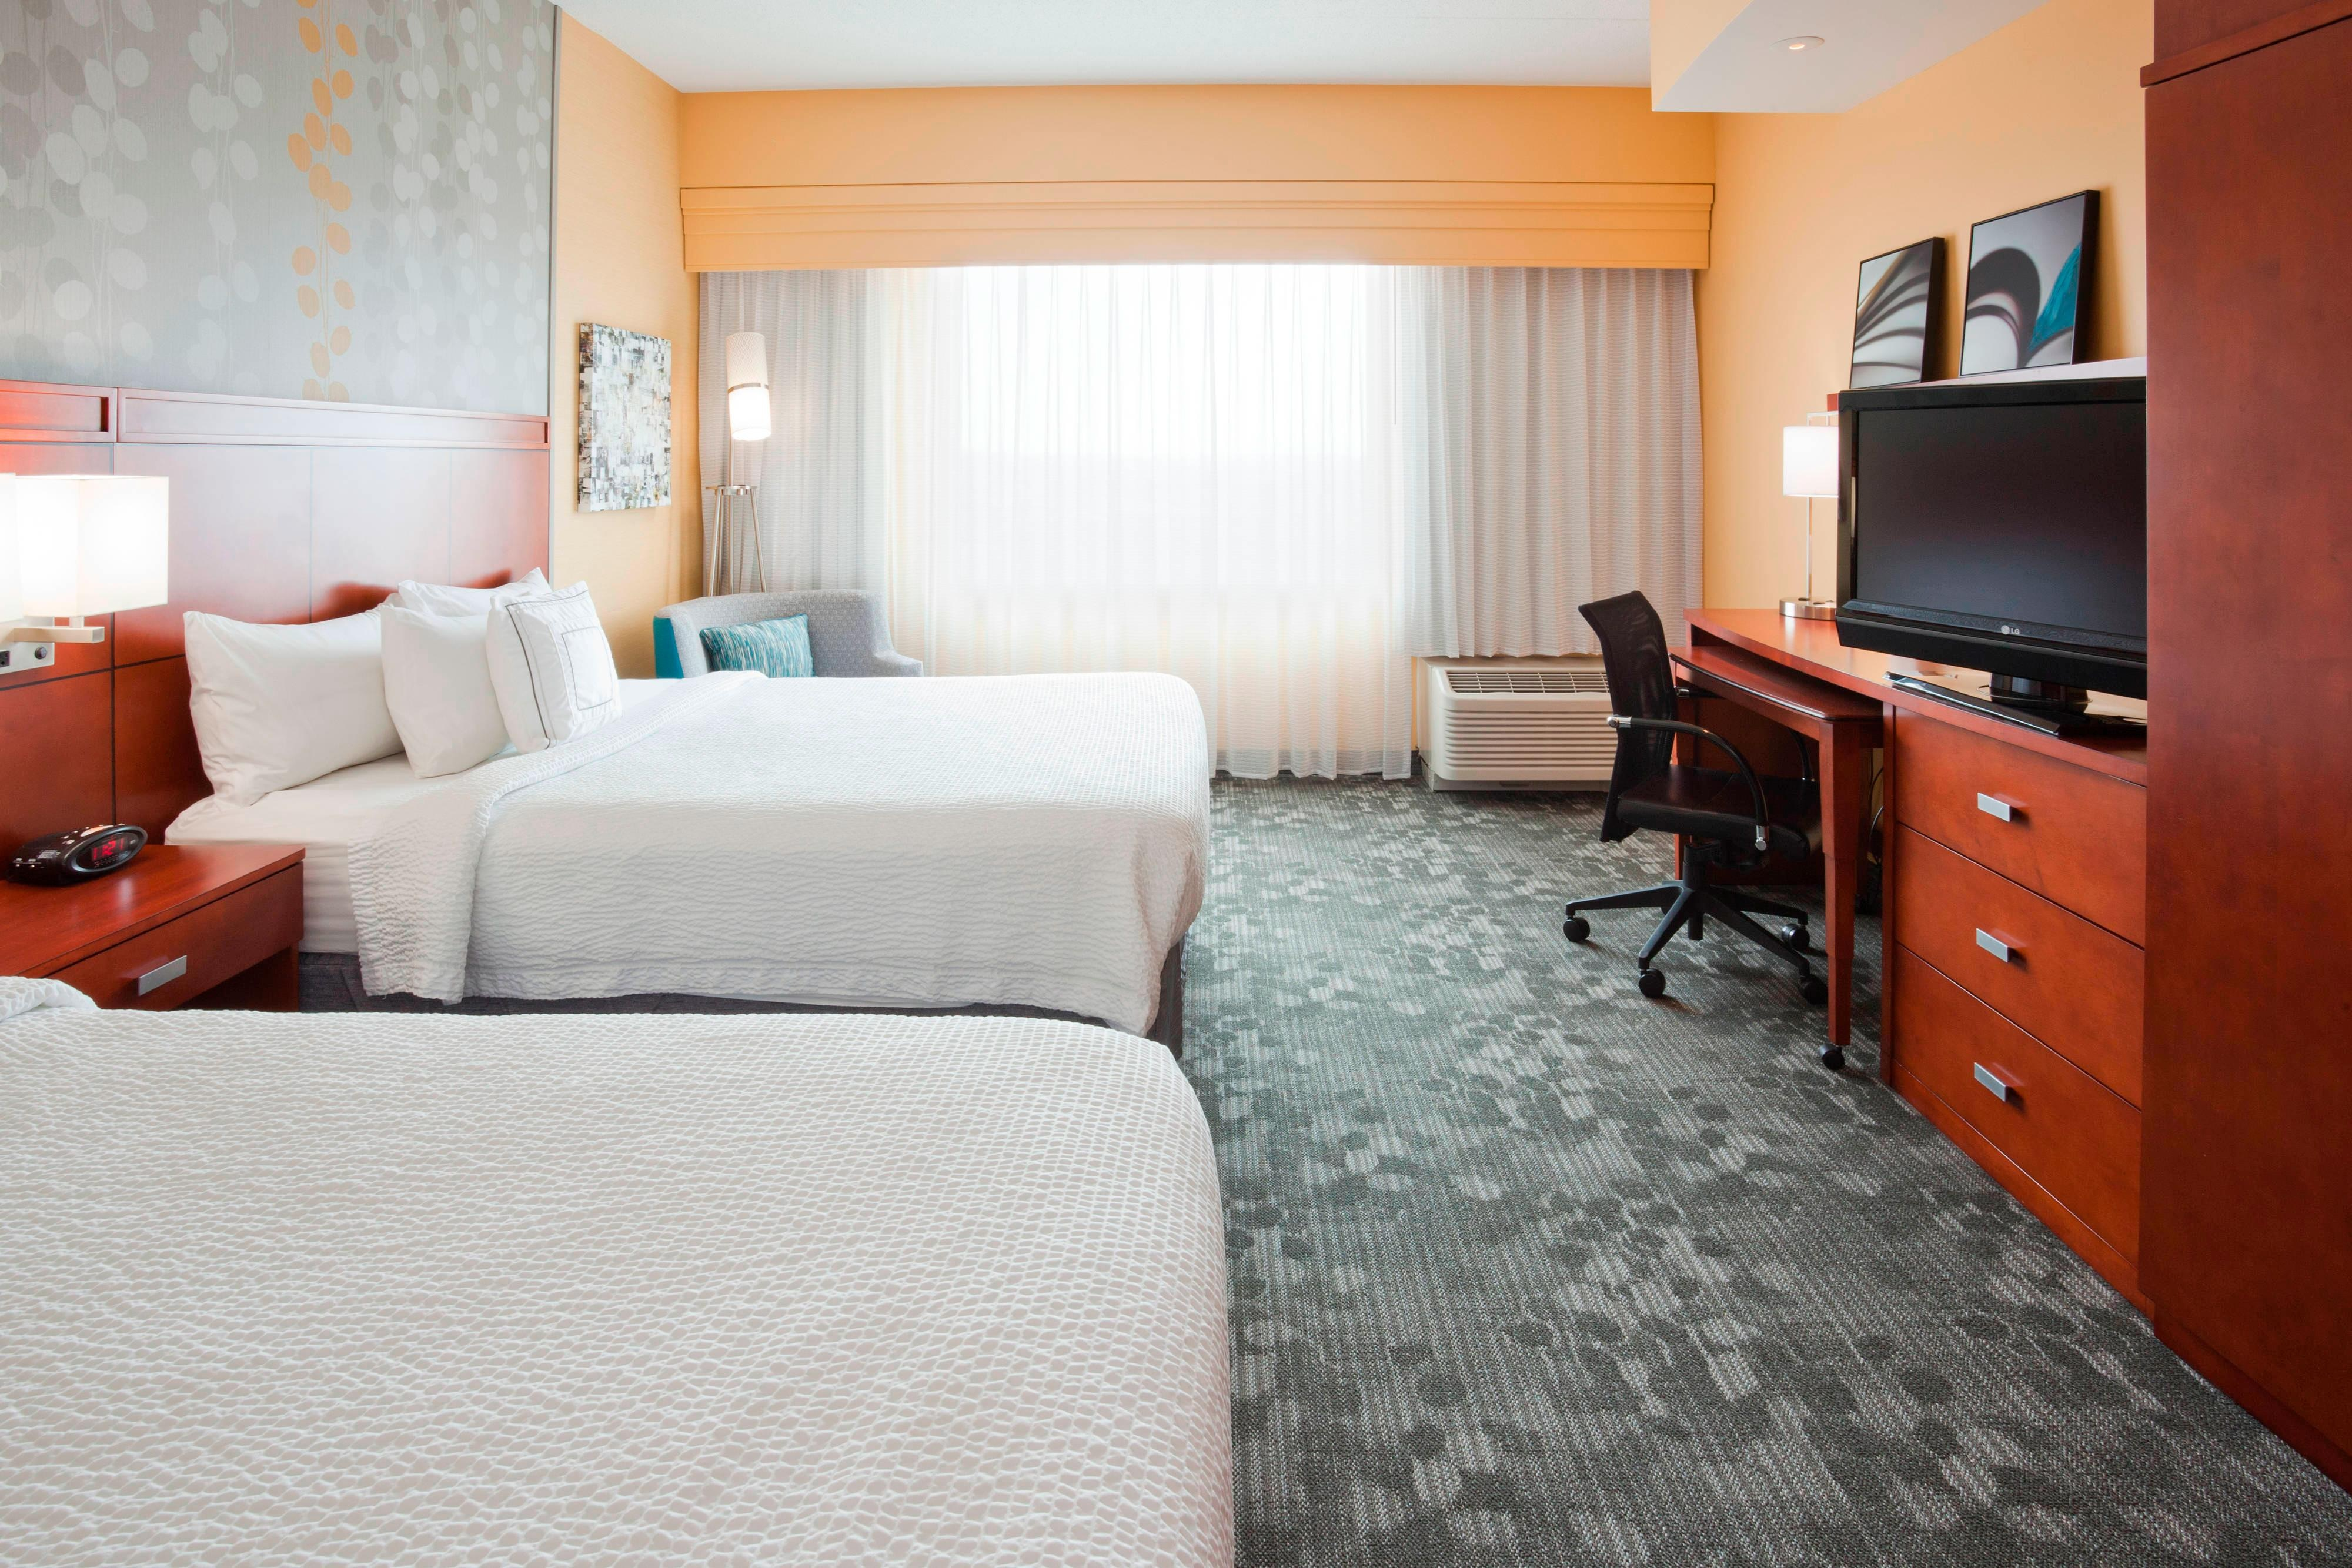 Maple Grove, MN Marriott hotel room that sleeps 4